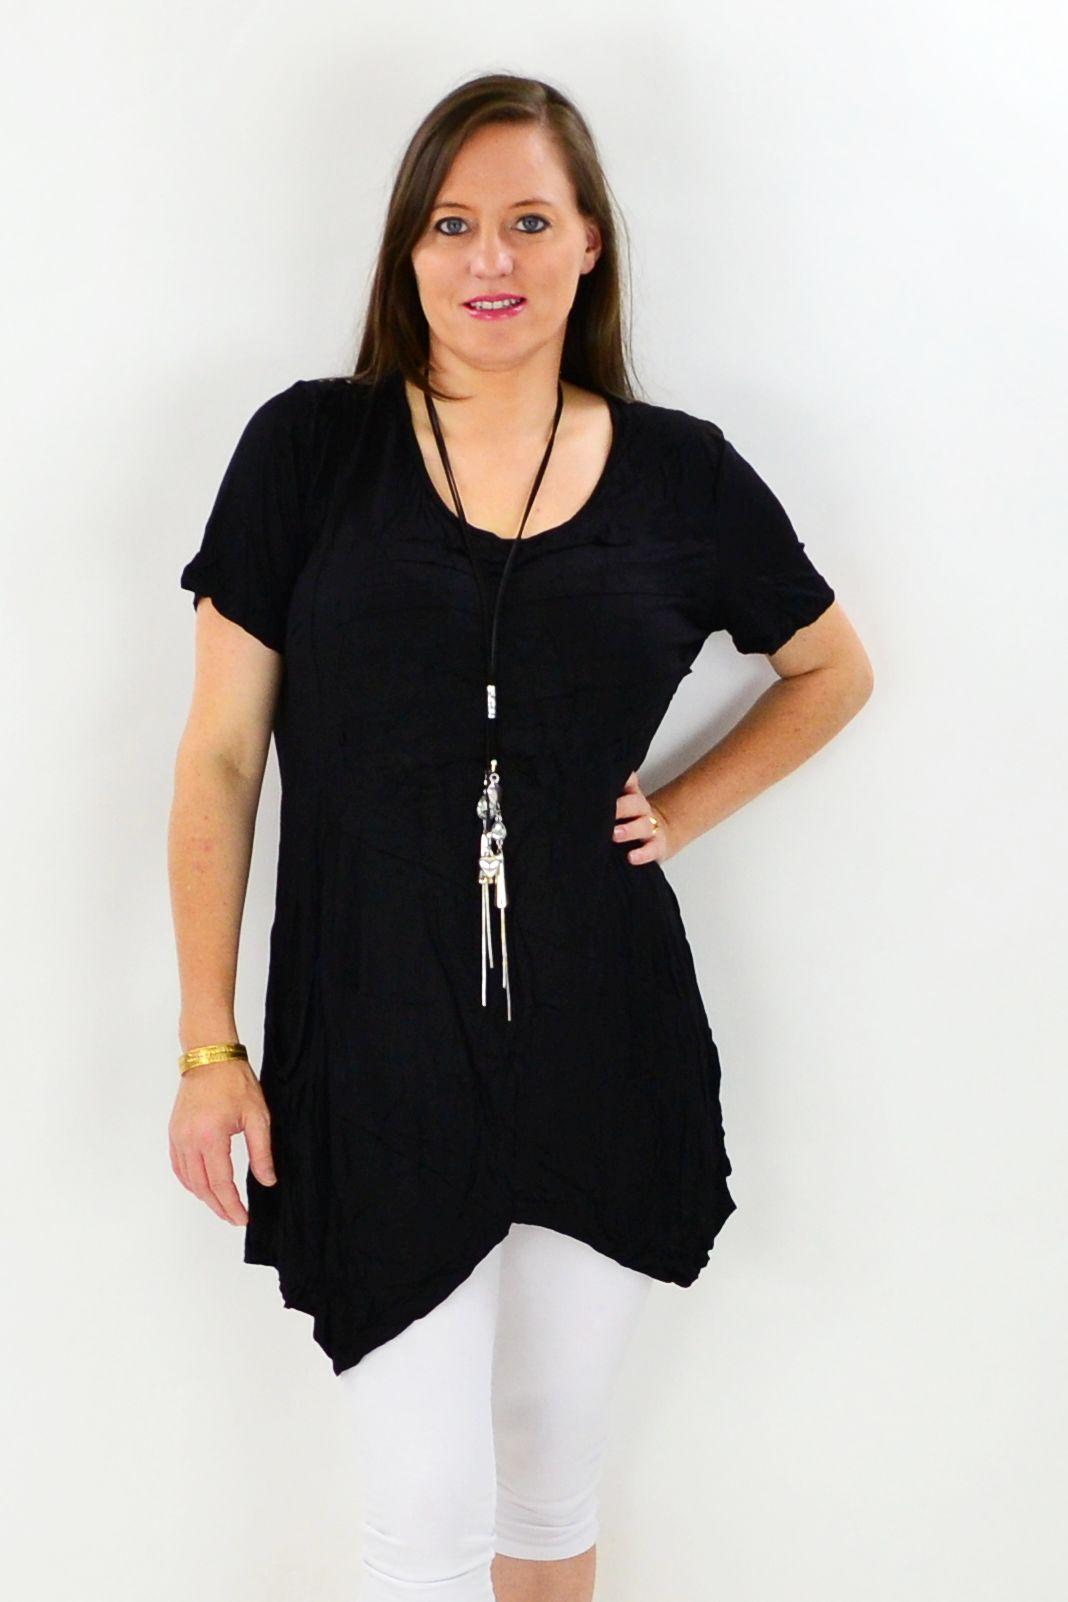 Black Lindeman Island Tunic - at I Love Tunics @ www.ilovetunics.com = Number One! Tunics Destination